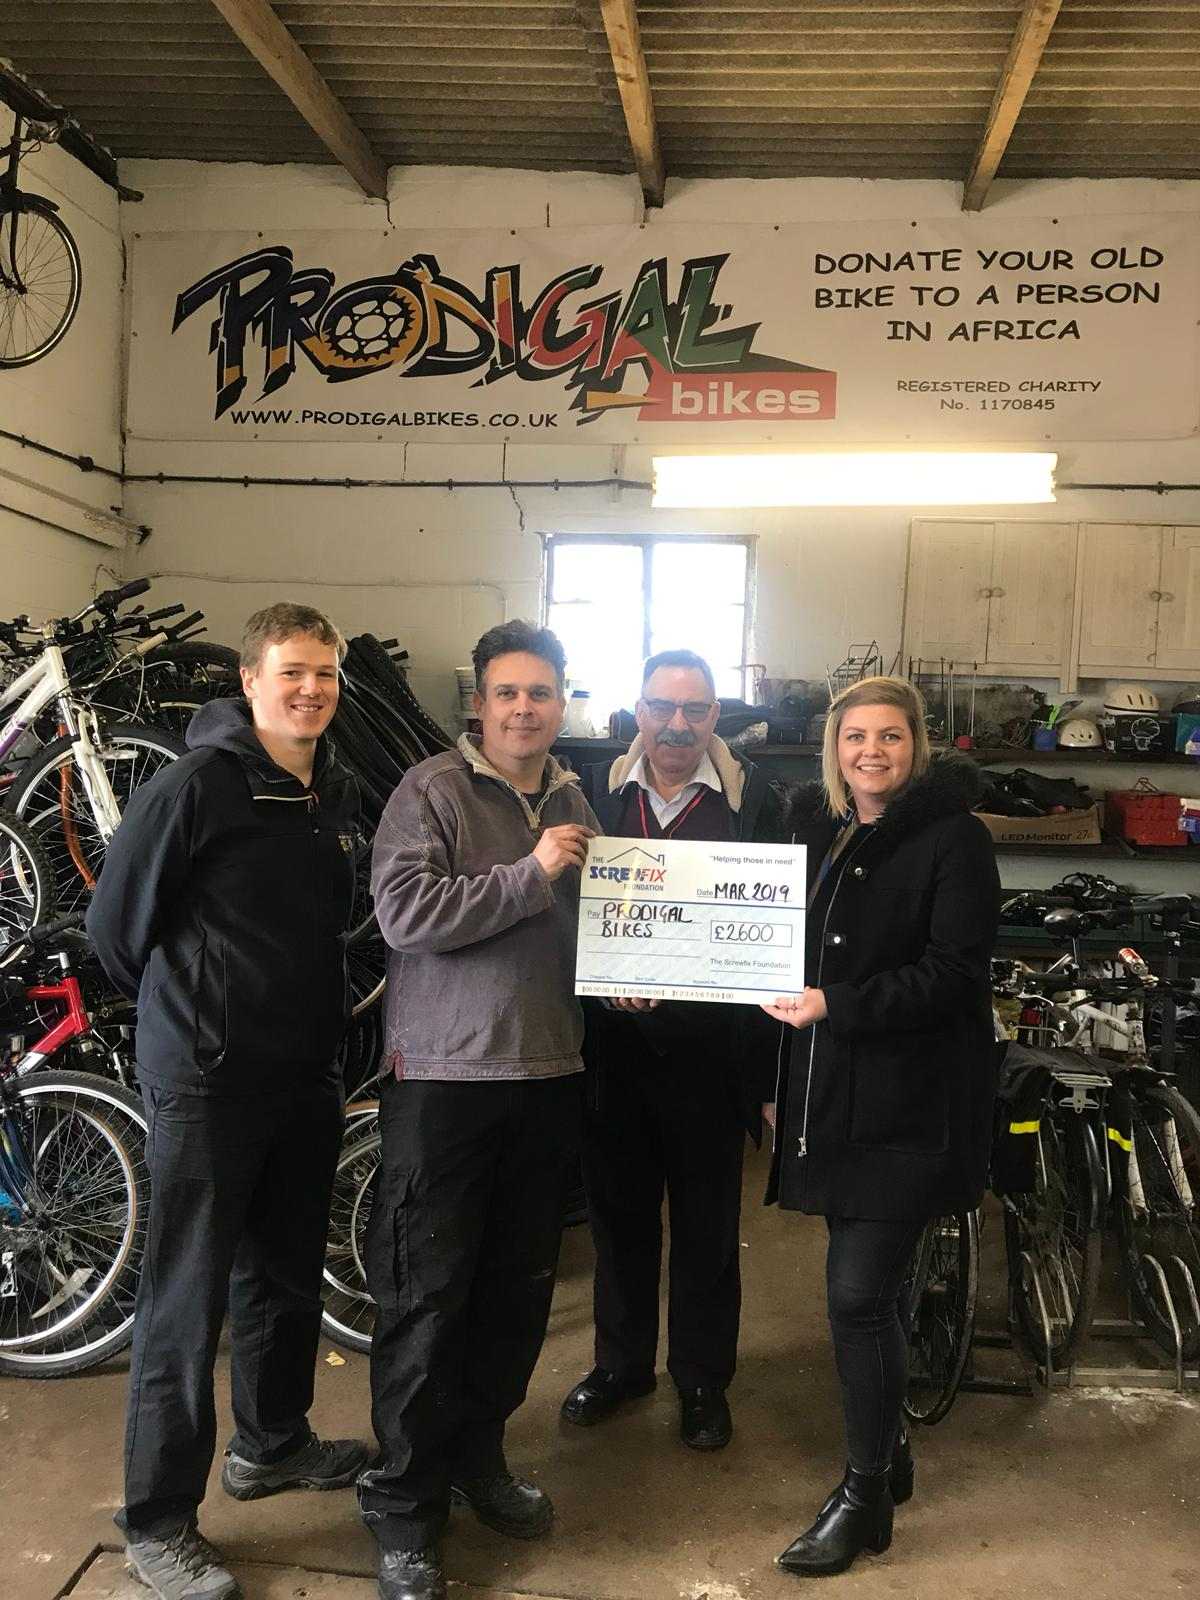 Prodigal bikes gets a helping hand from the Screwfix Foundation